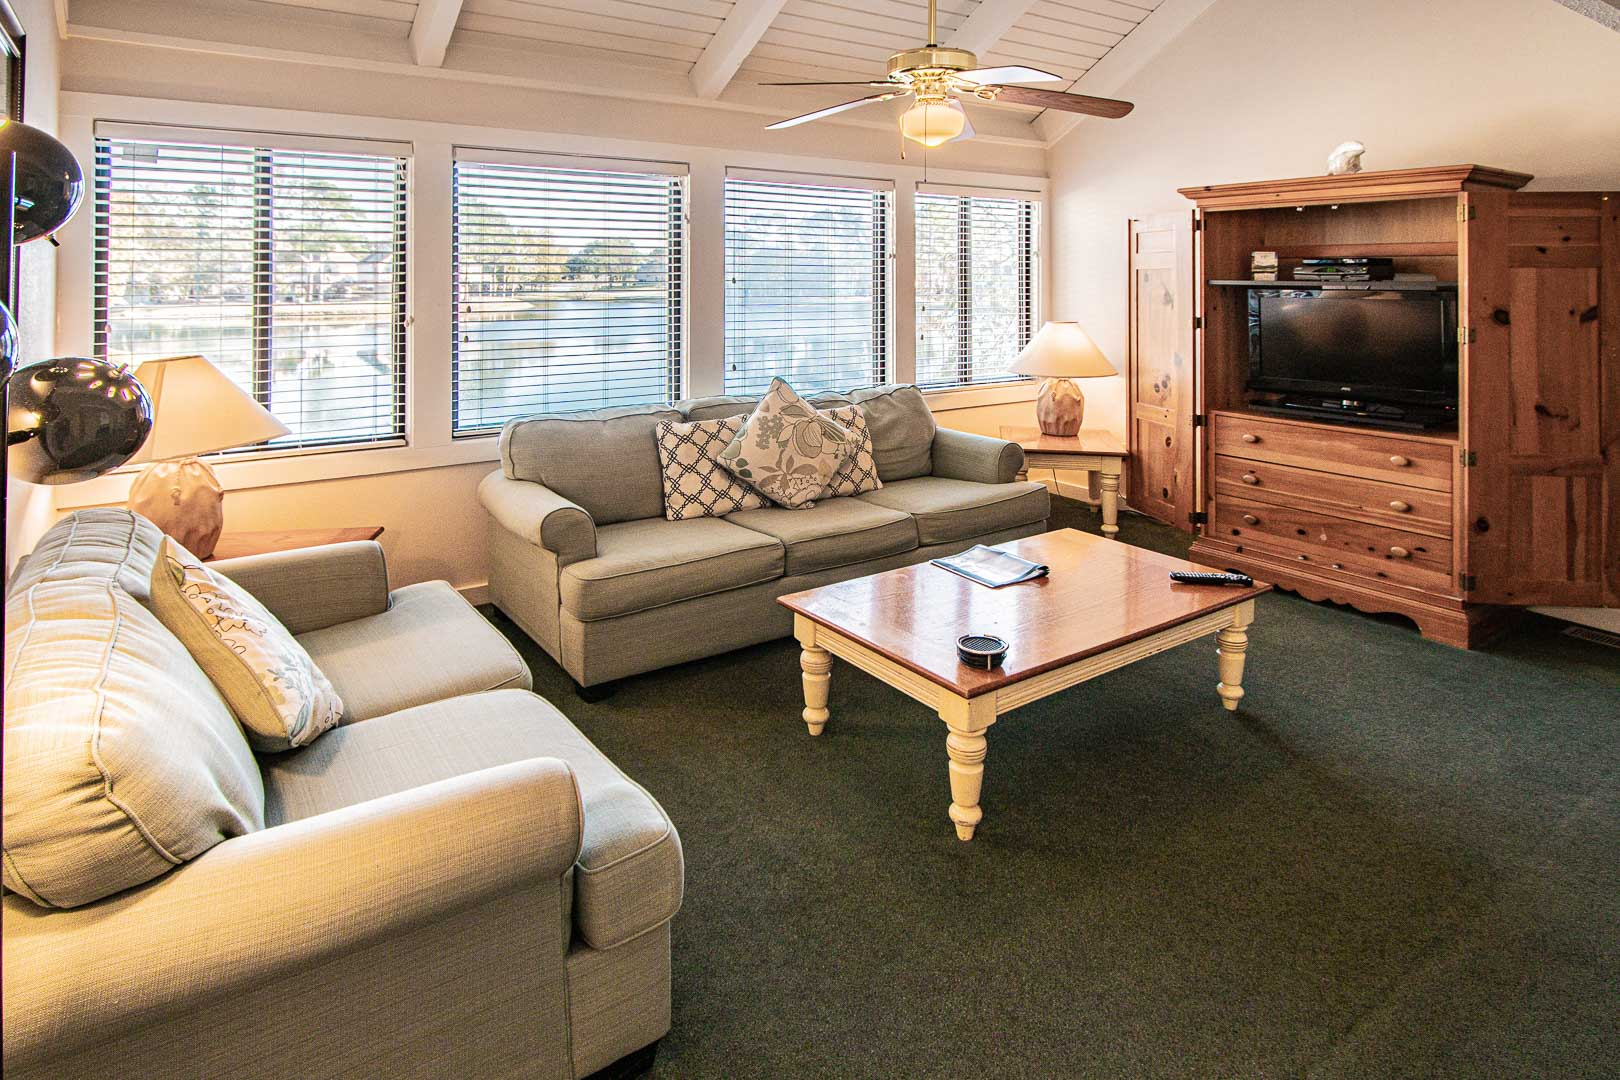 A cozy living room at VRI's Waterwood Townhomes in New Bern, North Carolina.